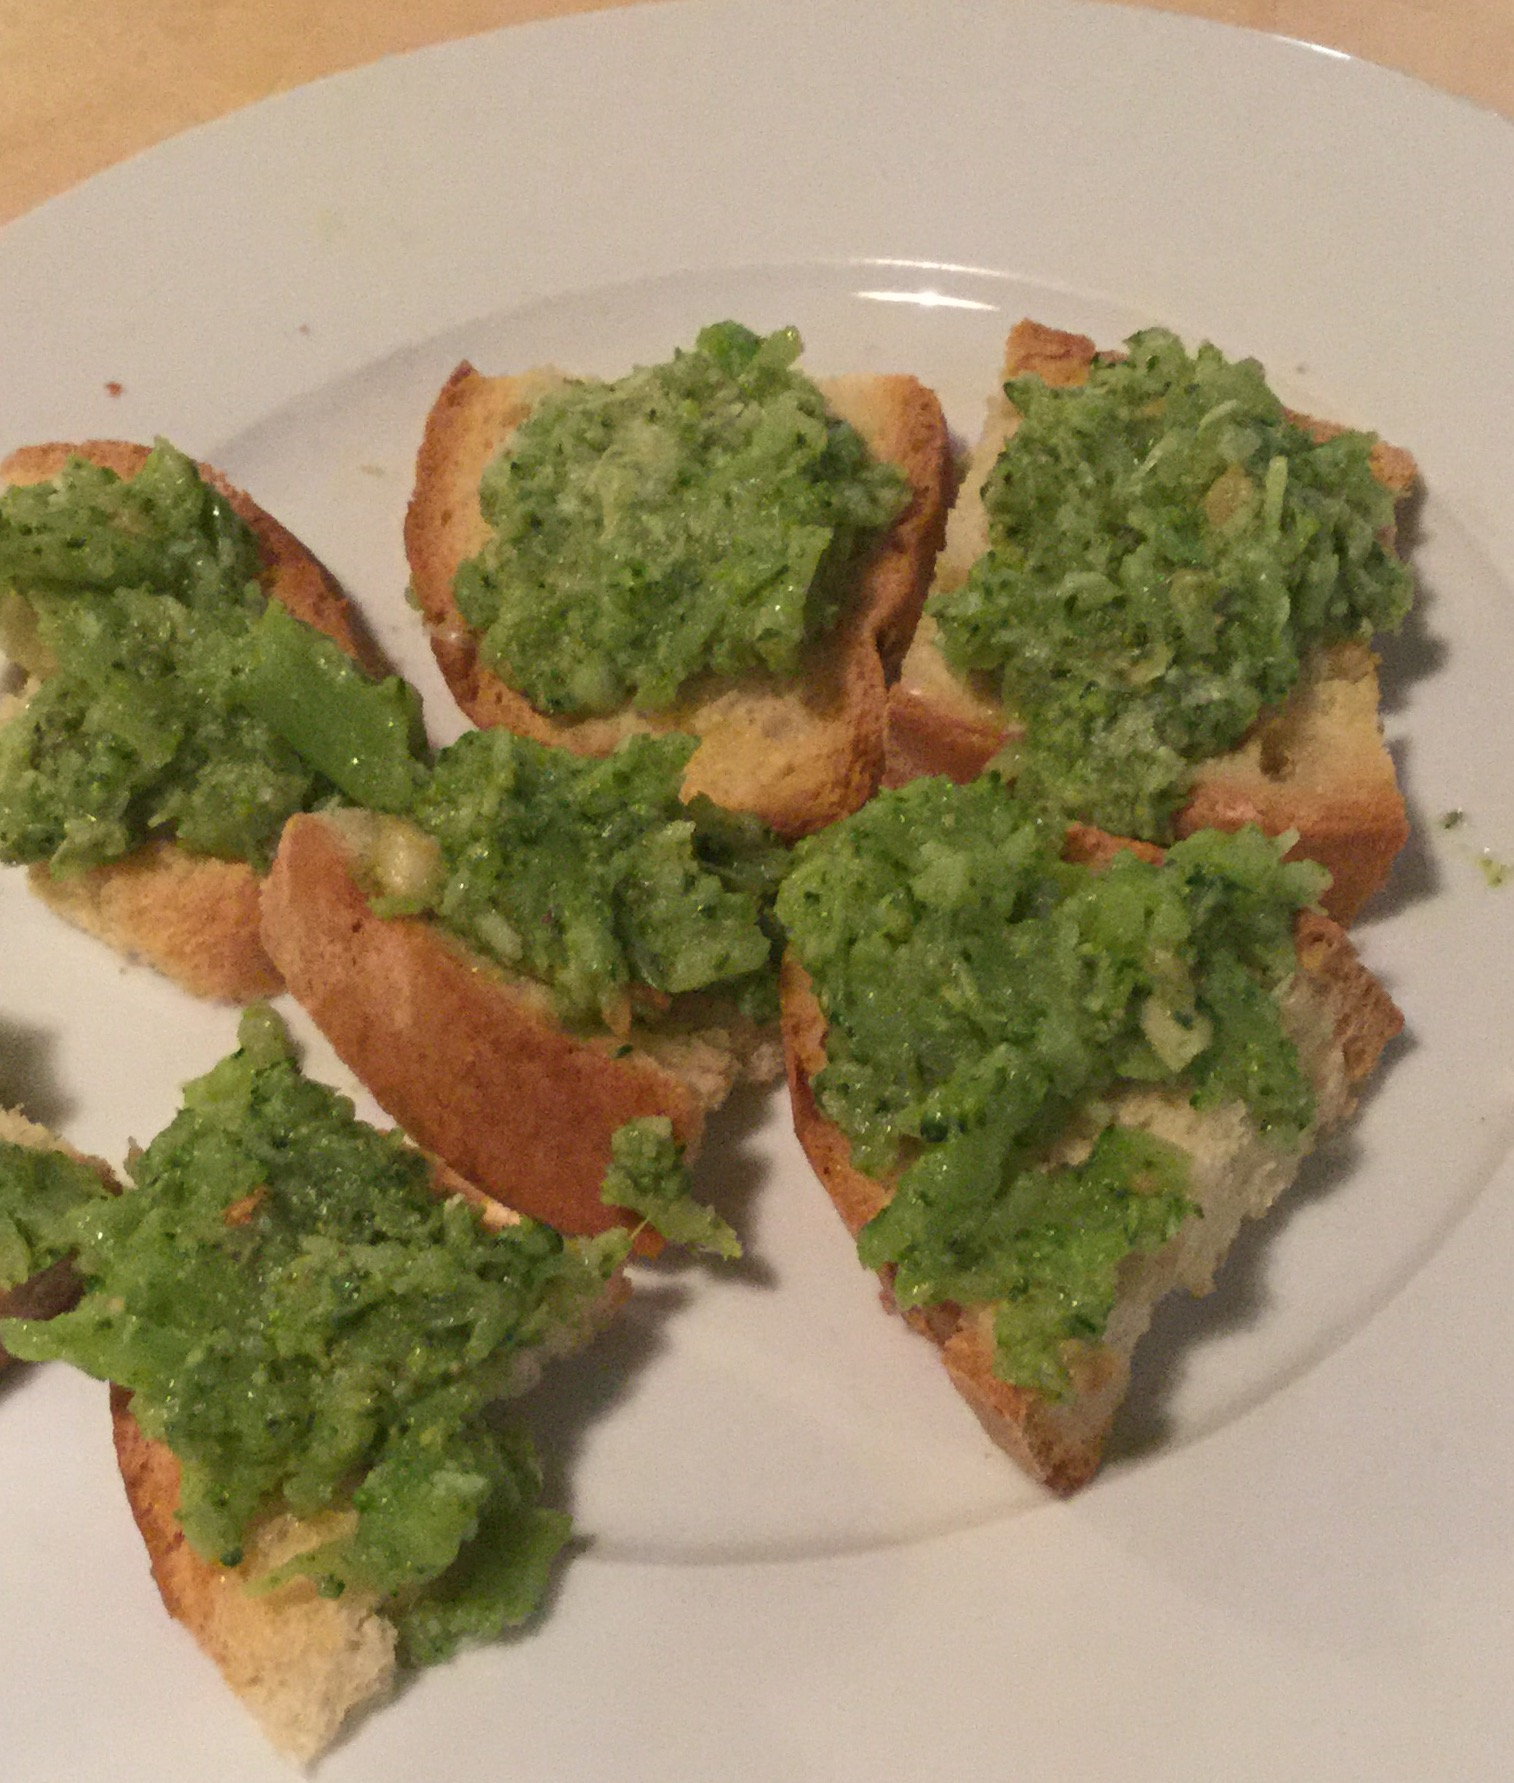 Smashed Broccoli Crostini with Olive oil and Garlic